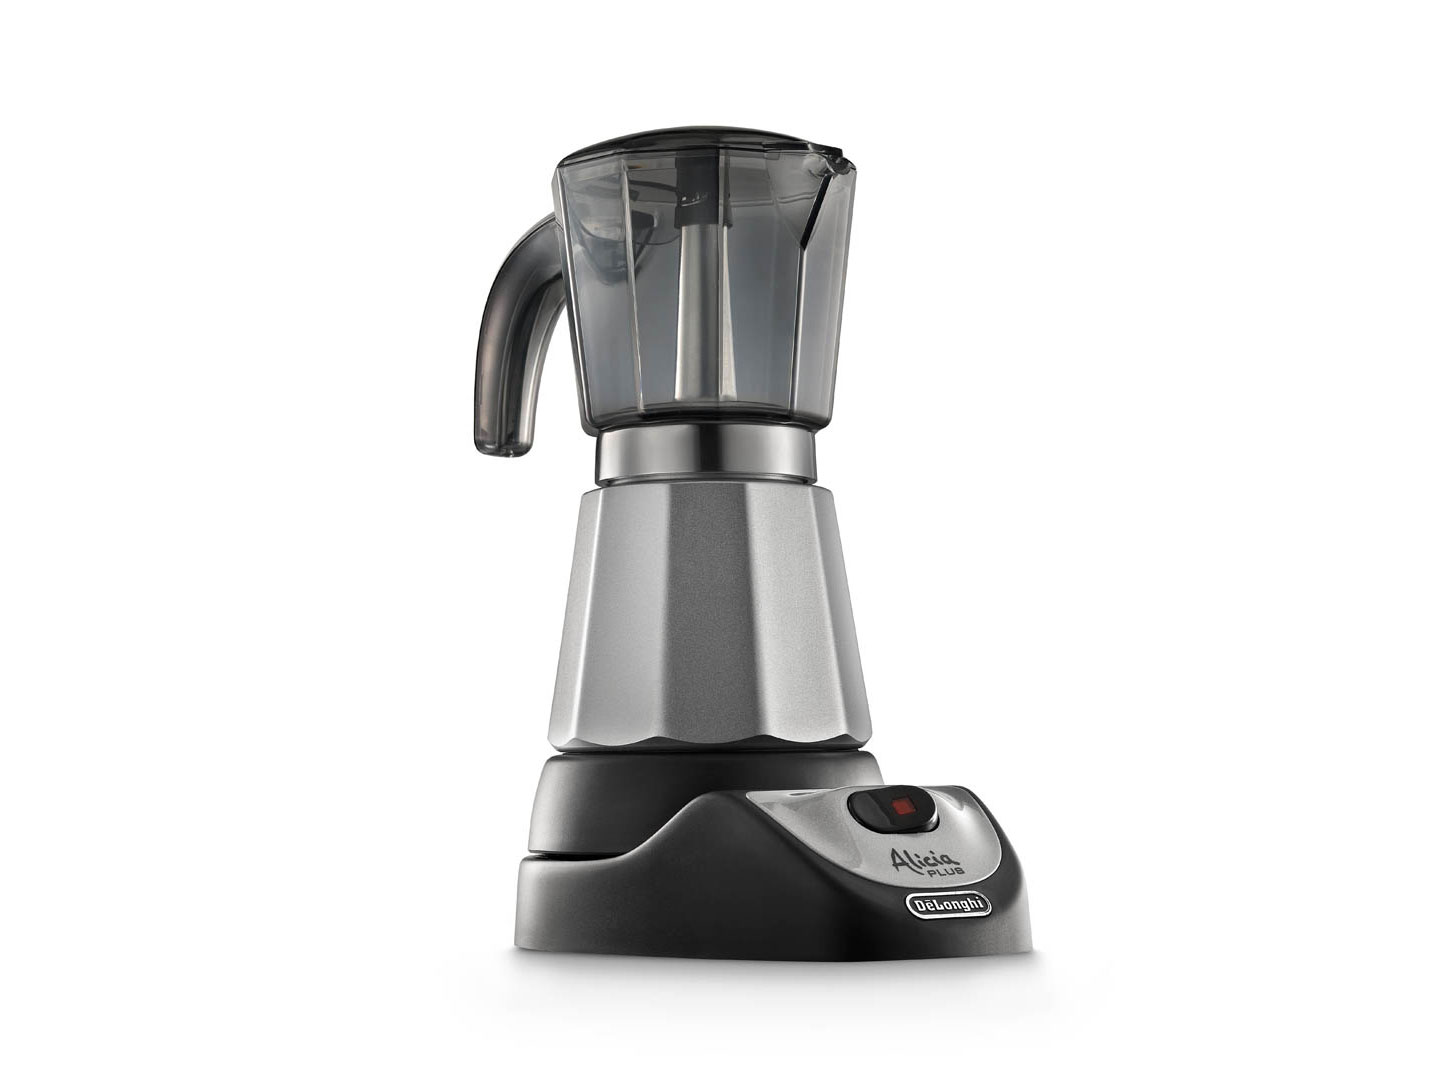 D0132037005 | Кофеварка DeLonghi Alicia Plus EMKM 4 | Coffee Shop